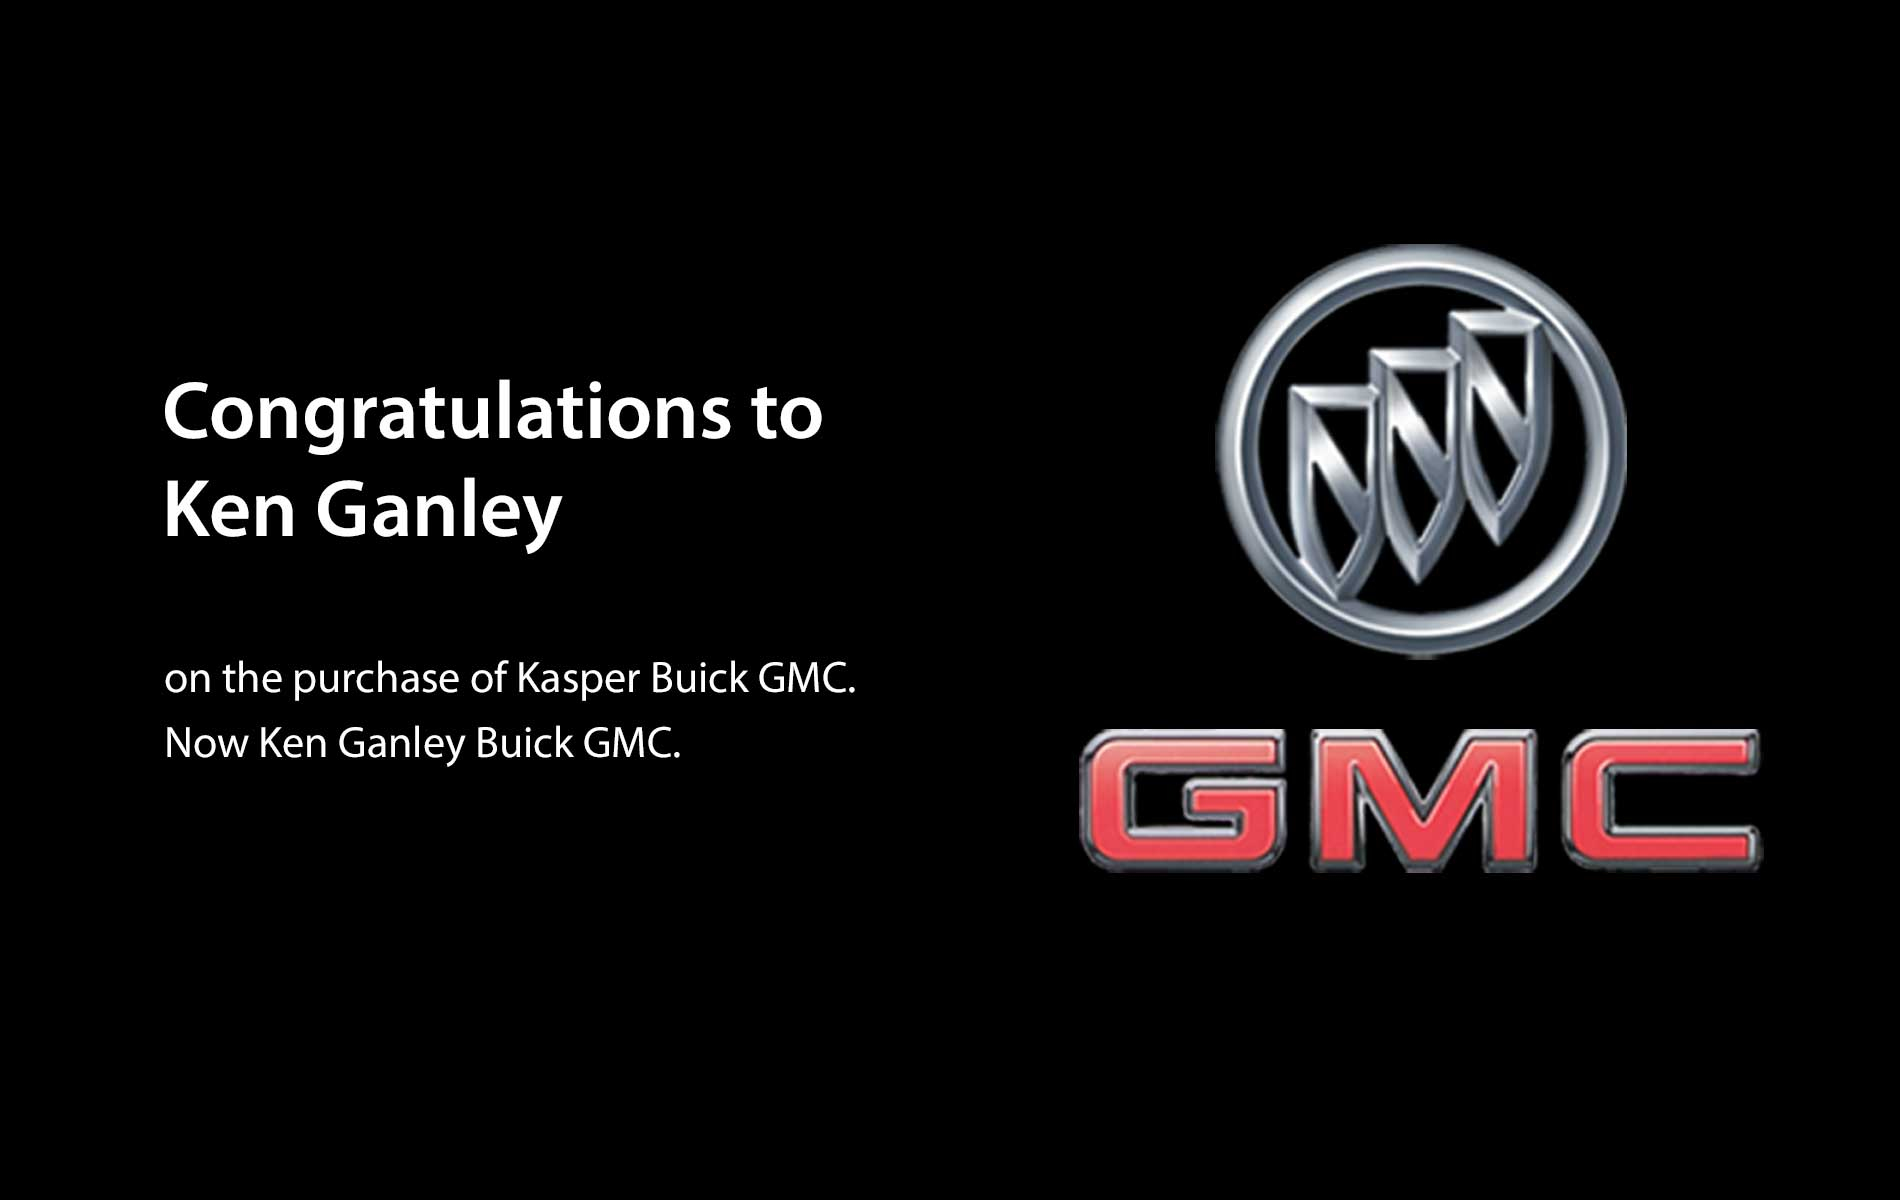 GANLEY-BUICK-GMC-FP-SHOWCASE-1900x1200